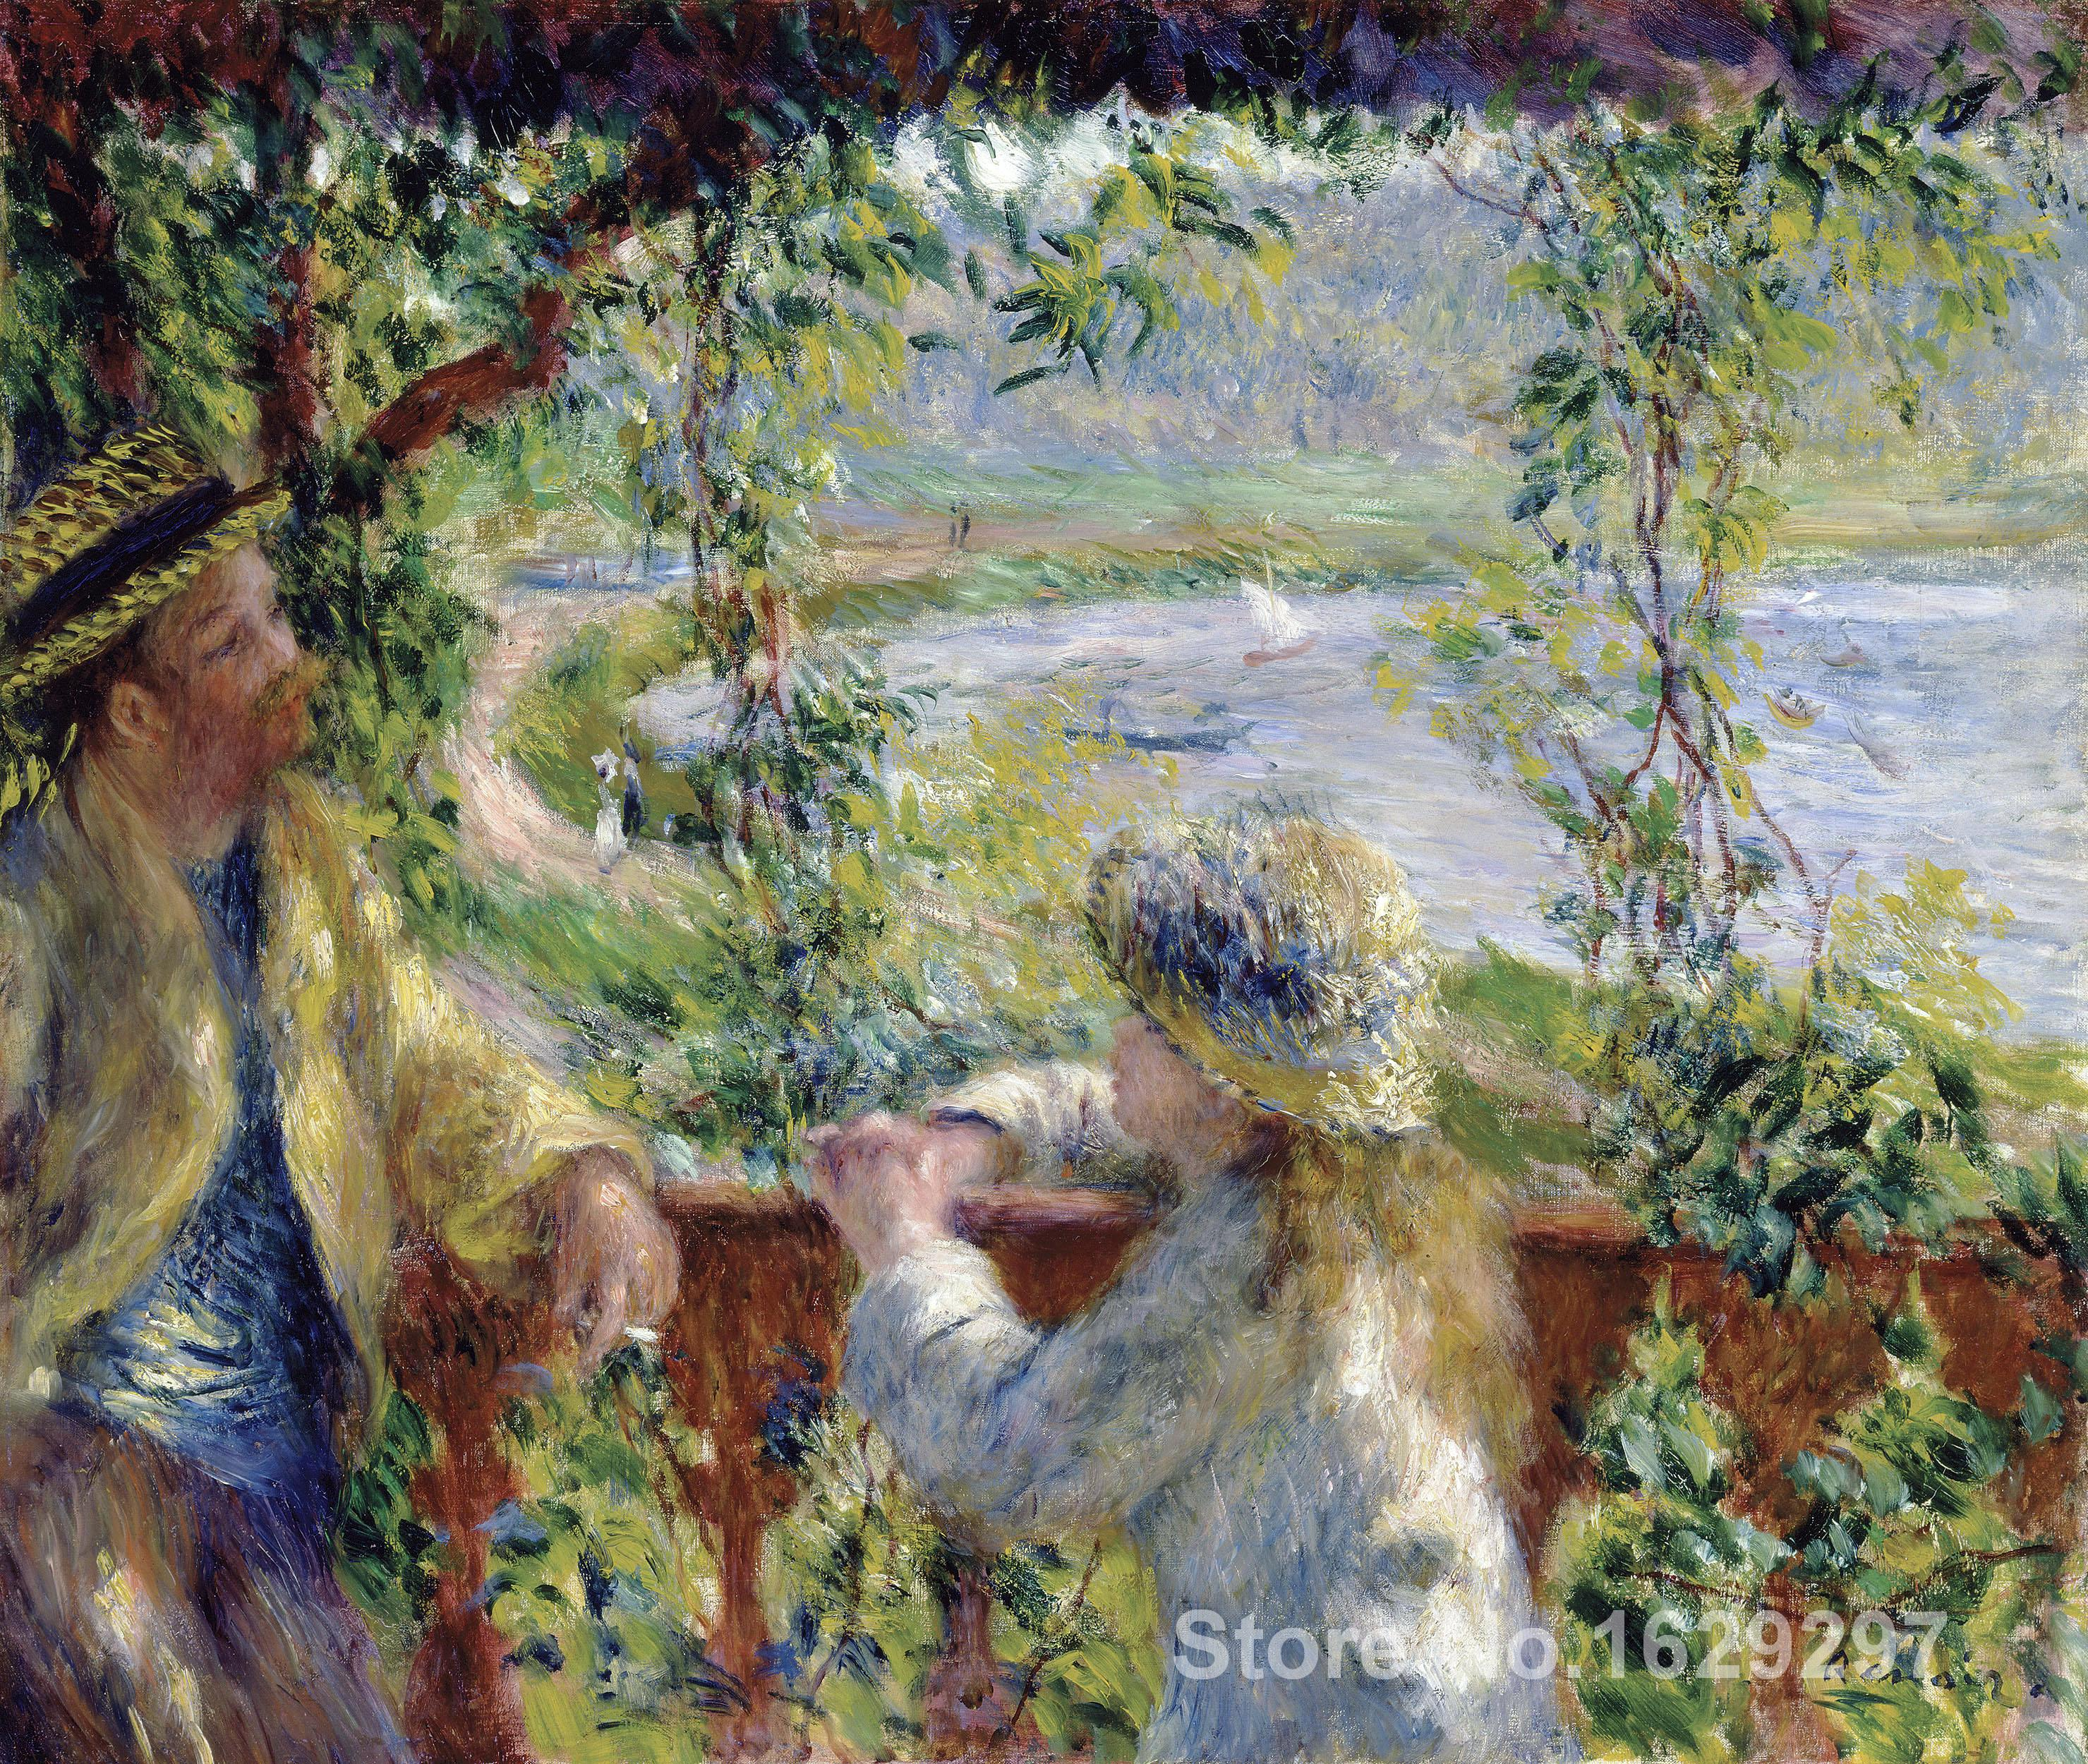 handmade oil painting By the Water (Near the Lake) Pierre Auguste Renoir art Reproduction High qualityhandmade oil painting By the Water (Near the Lake) Pierre Auguste Renoir art Reproduction High quality